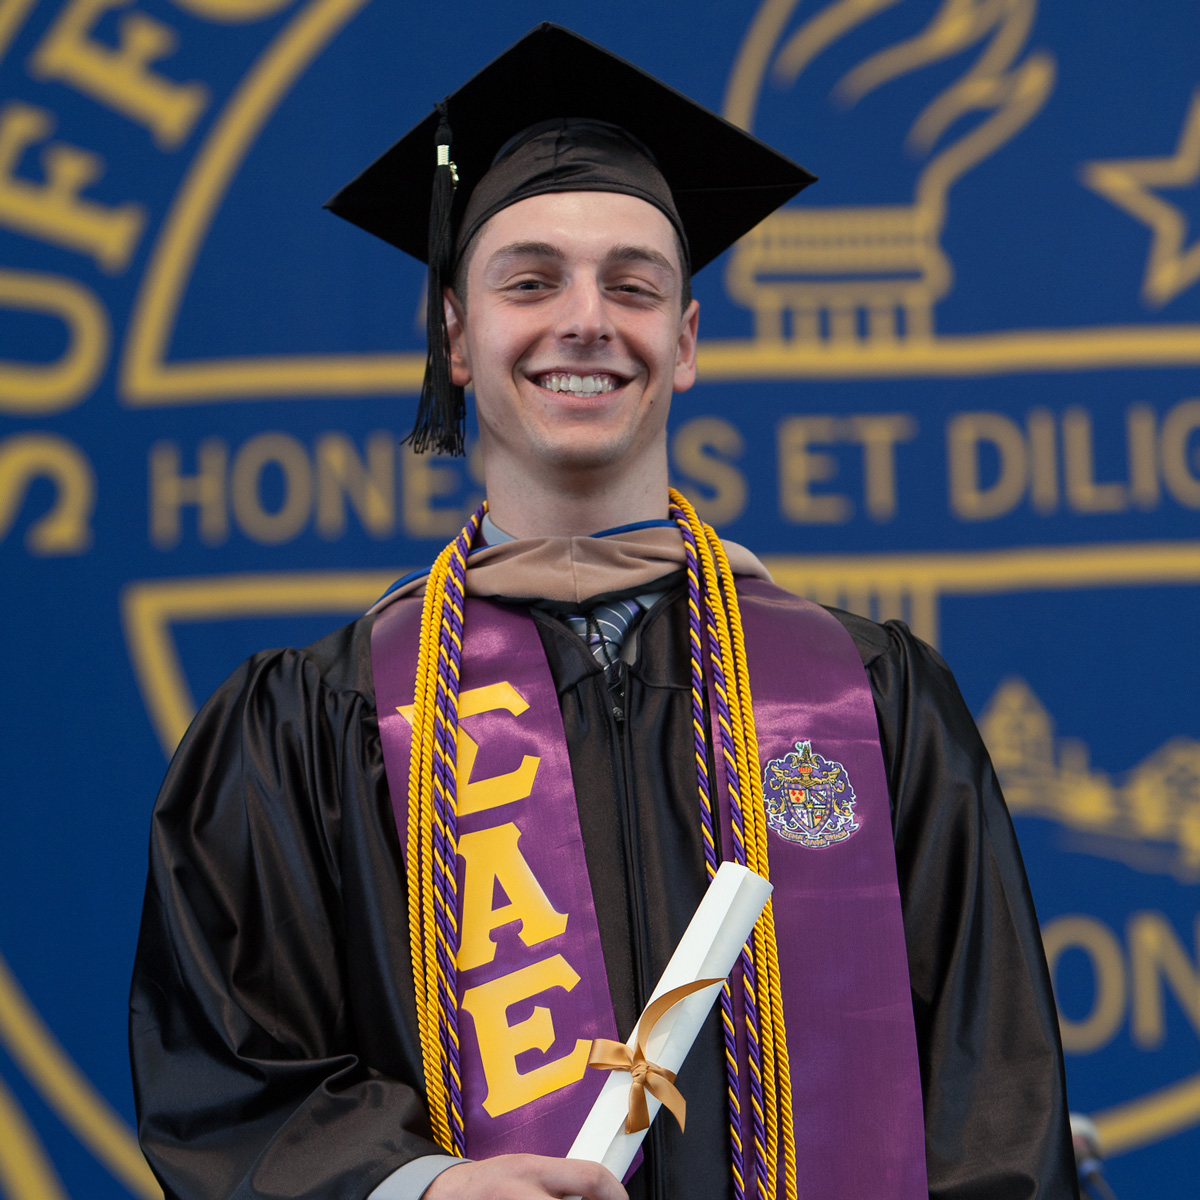 Dan holding up his scroll and smiling for the camera wearing his cap and gown while crossing the stage at Commencement.